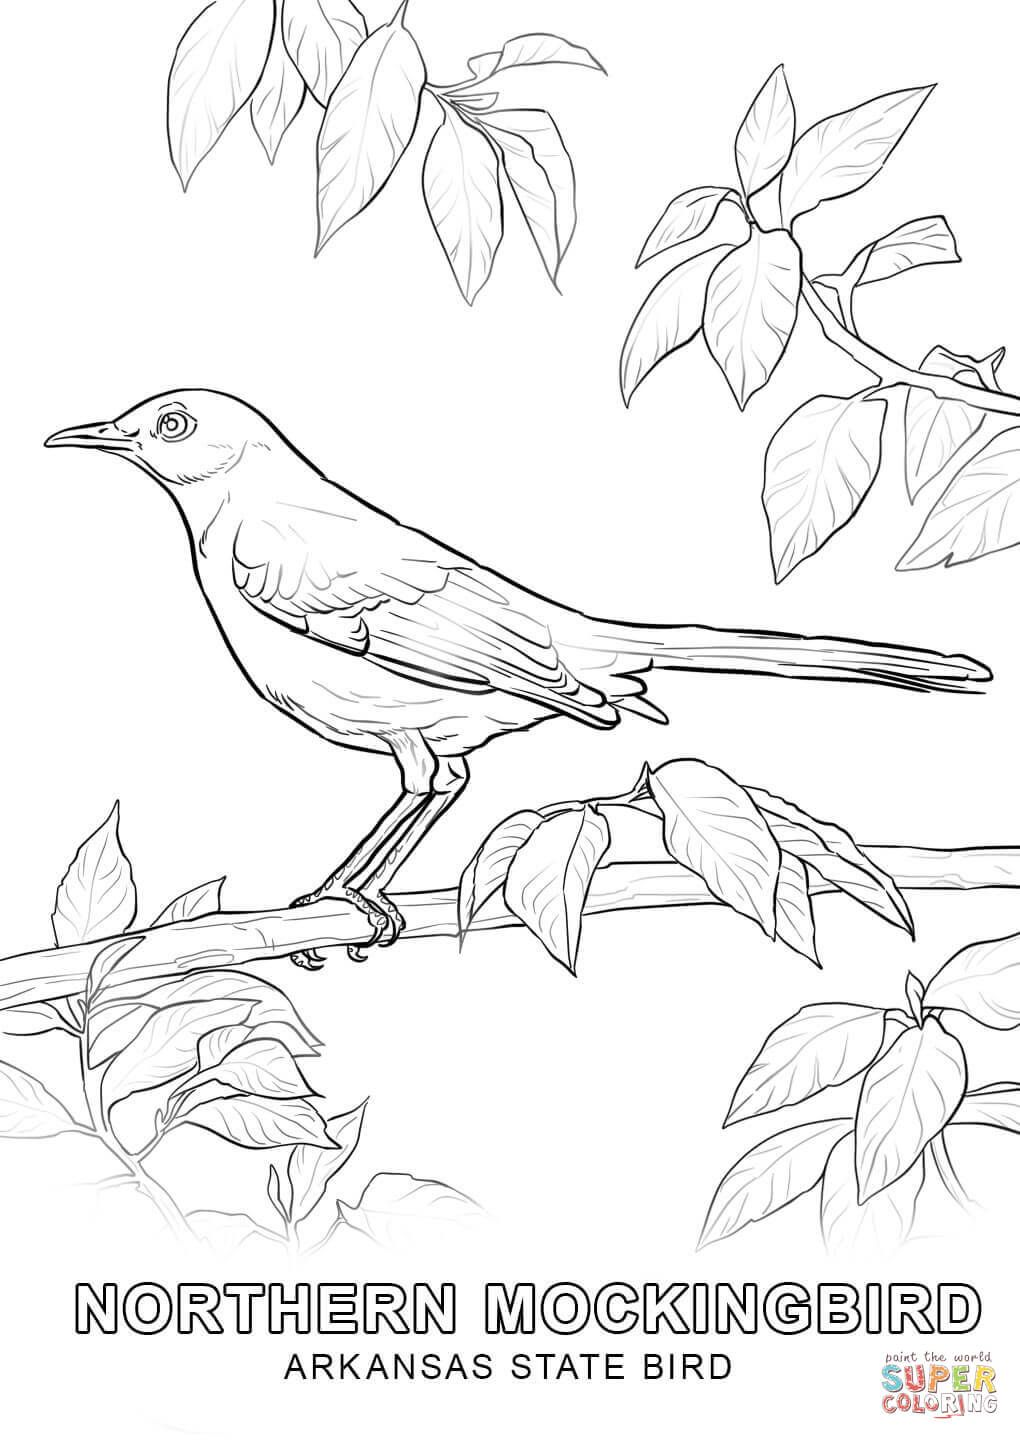 Arkansas State Bird Coloring Page Free Printable Coloring Pages